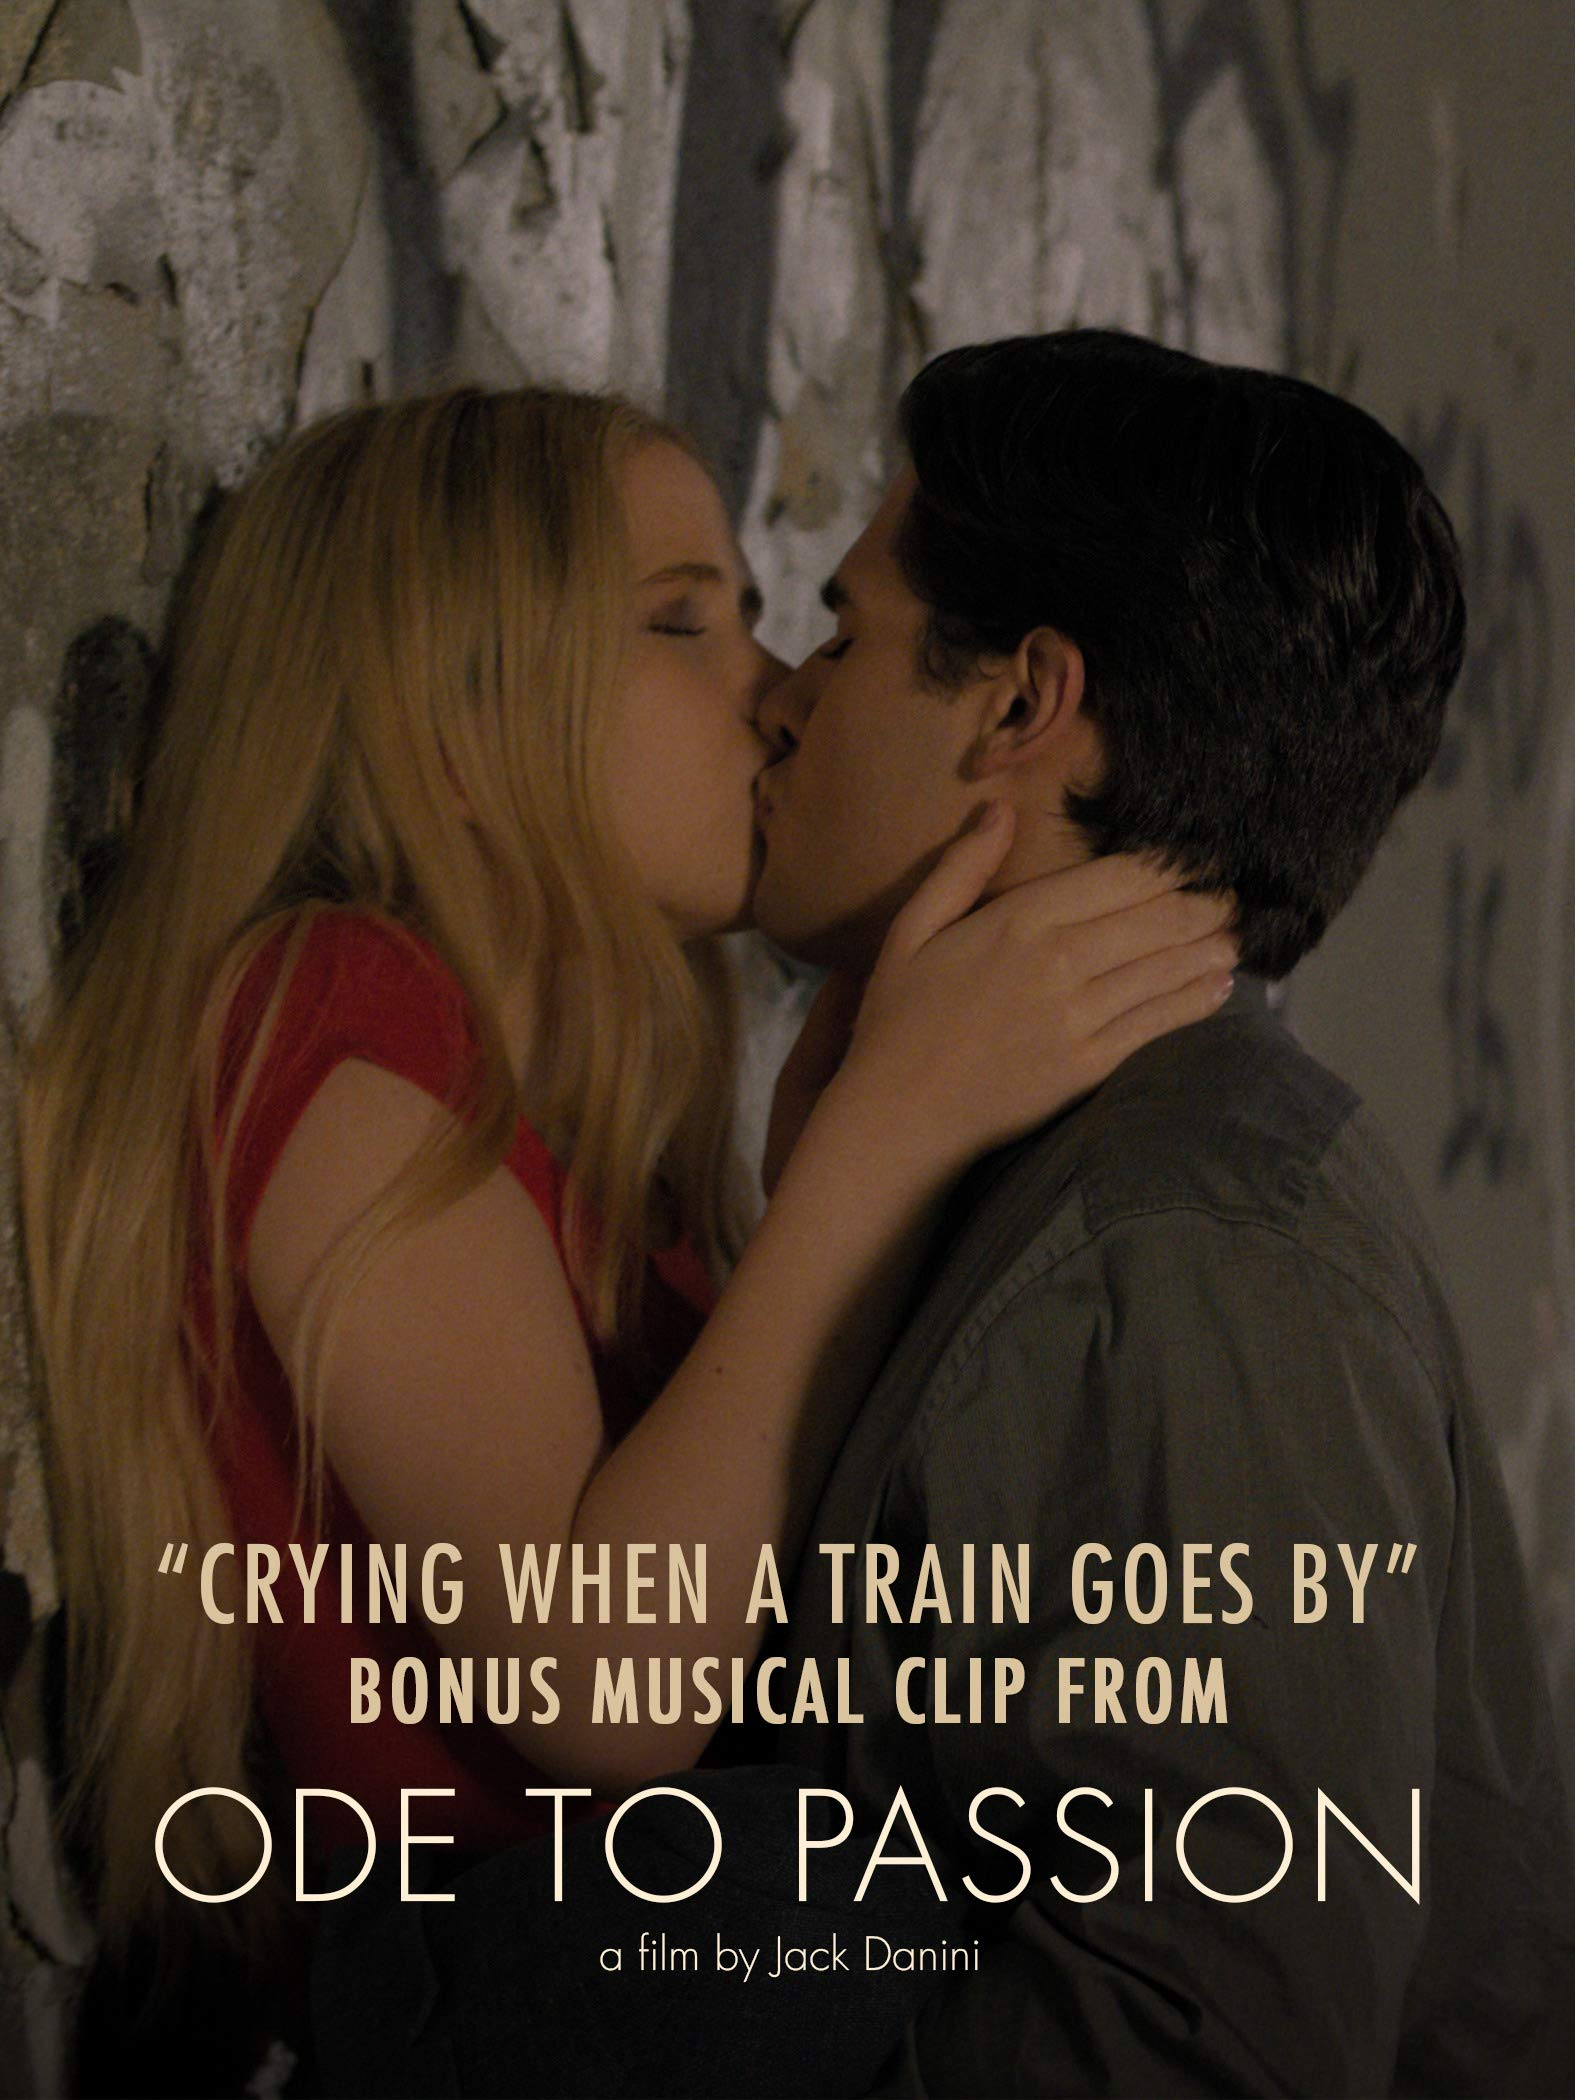 """Crying When a Train Goes By"" - Bonus Musical Clip from the film Ode to Passion"